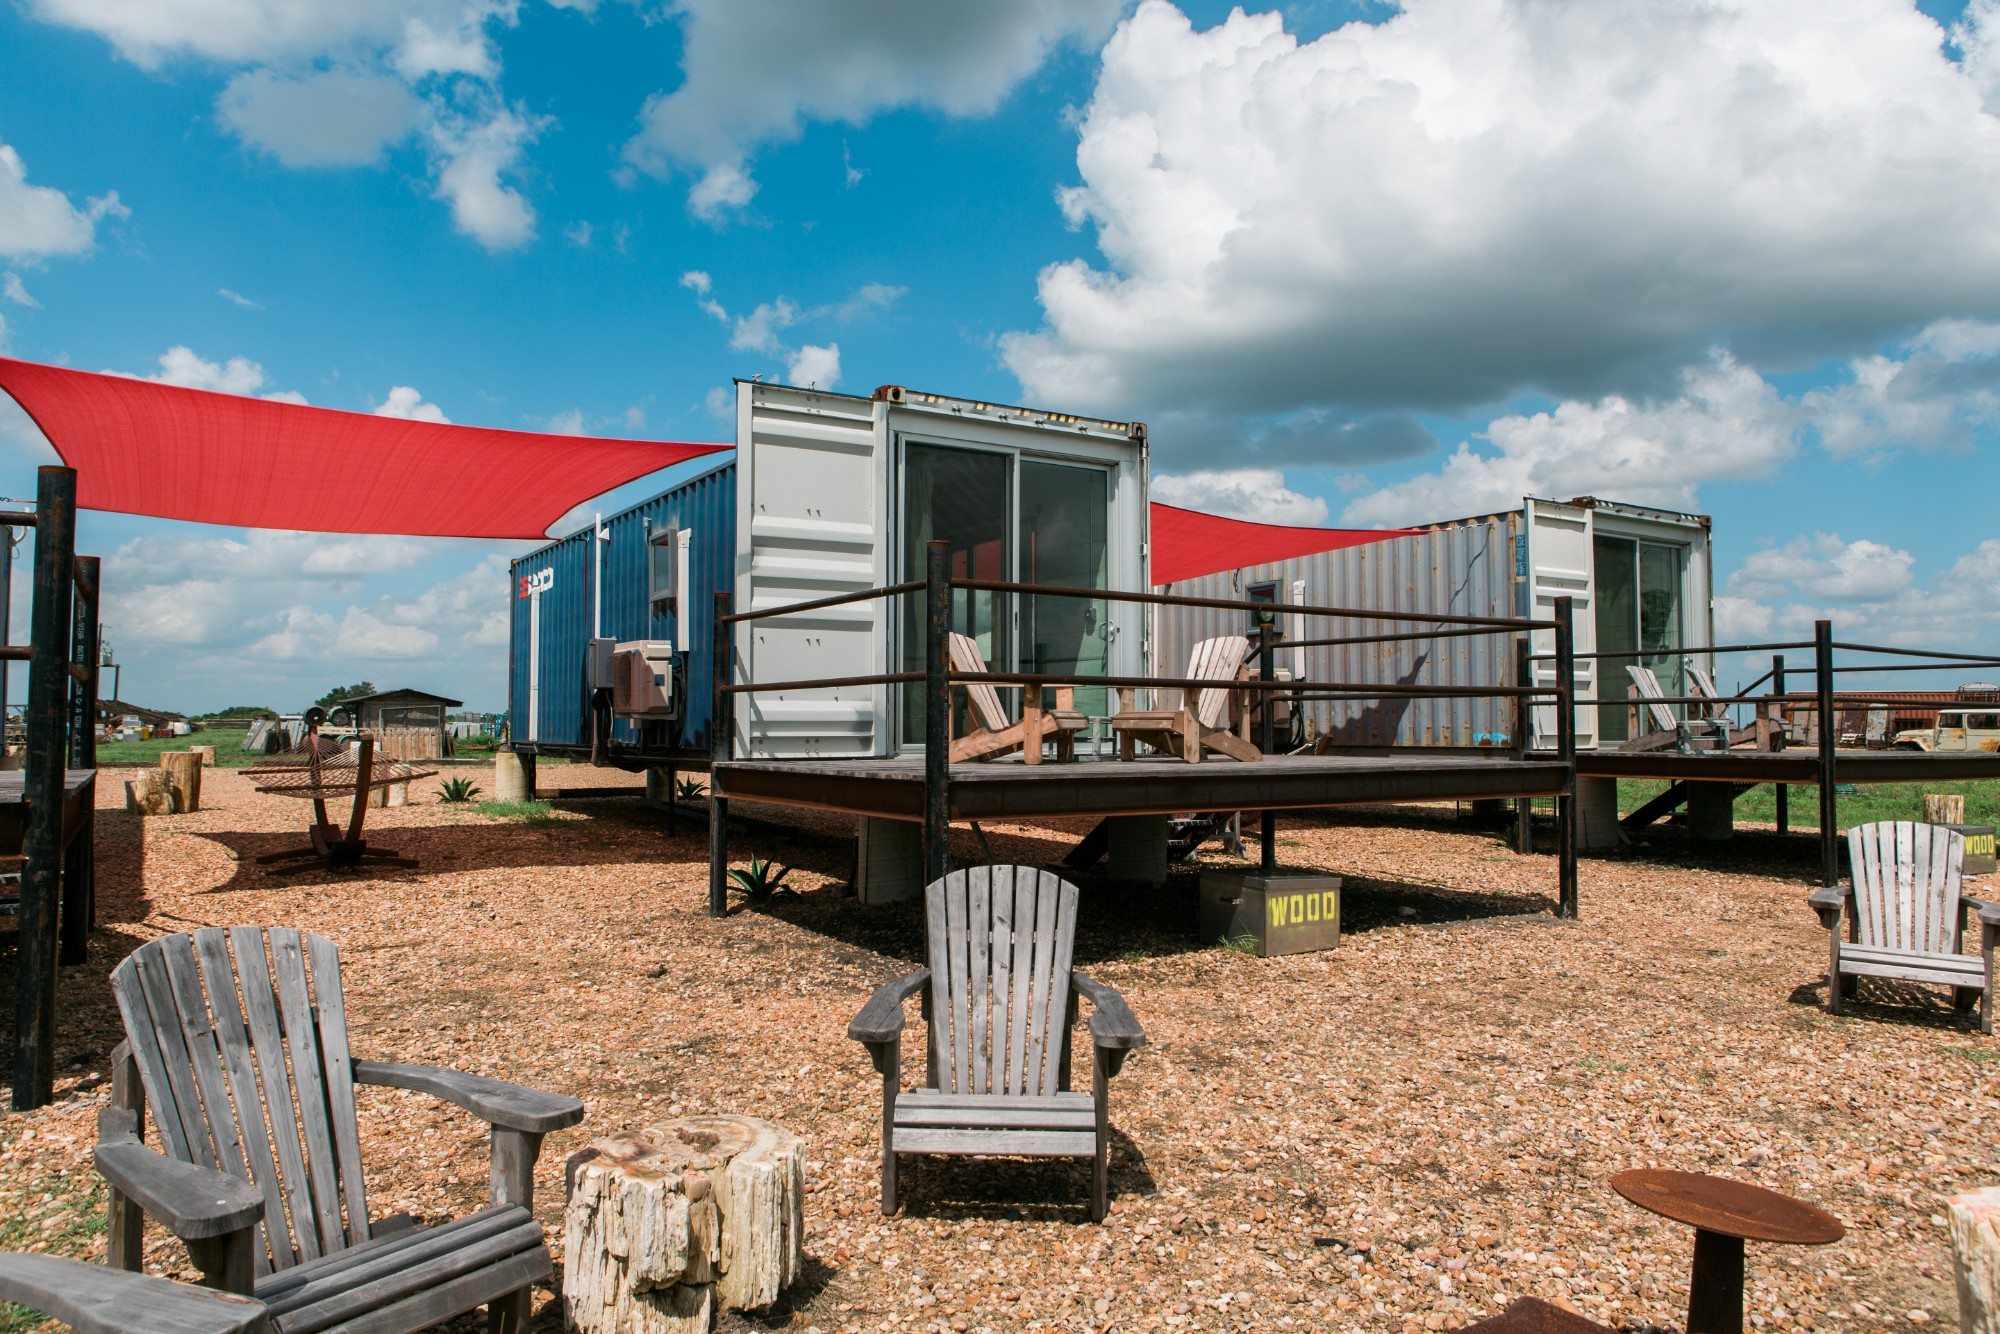 These upcycled accommodations will transform your idea of